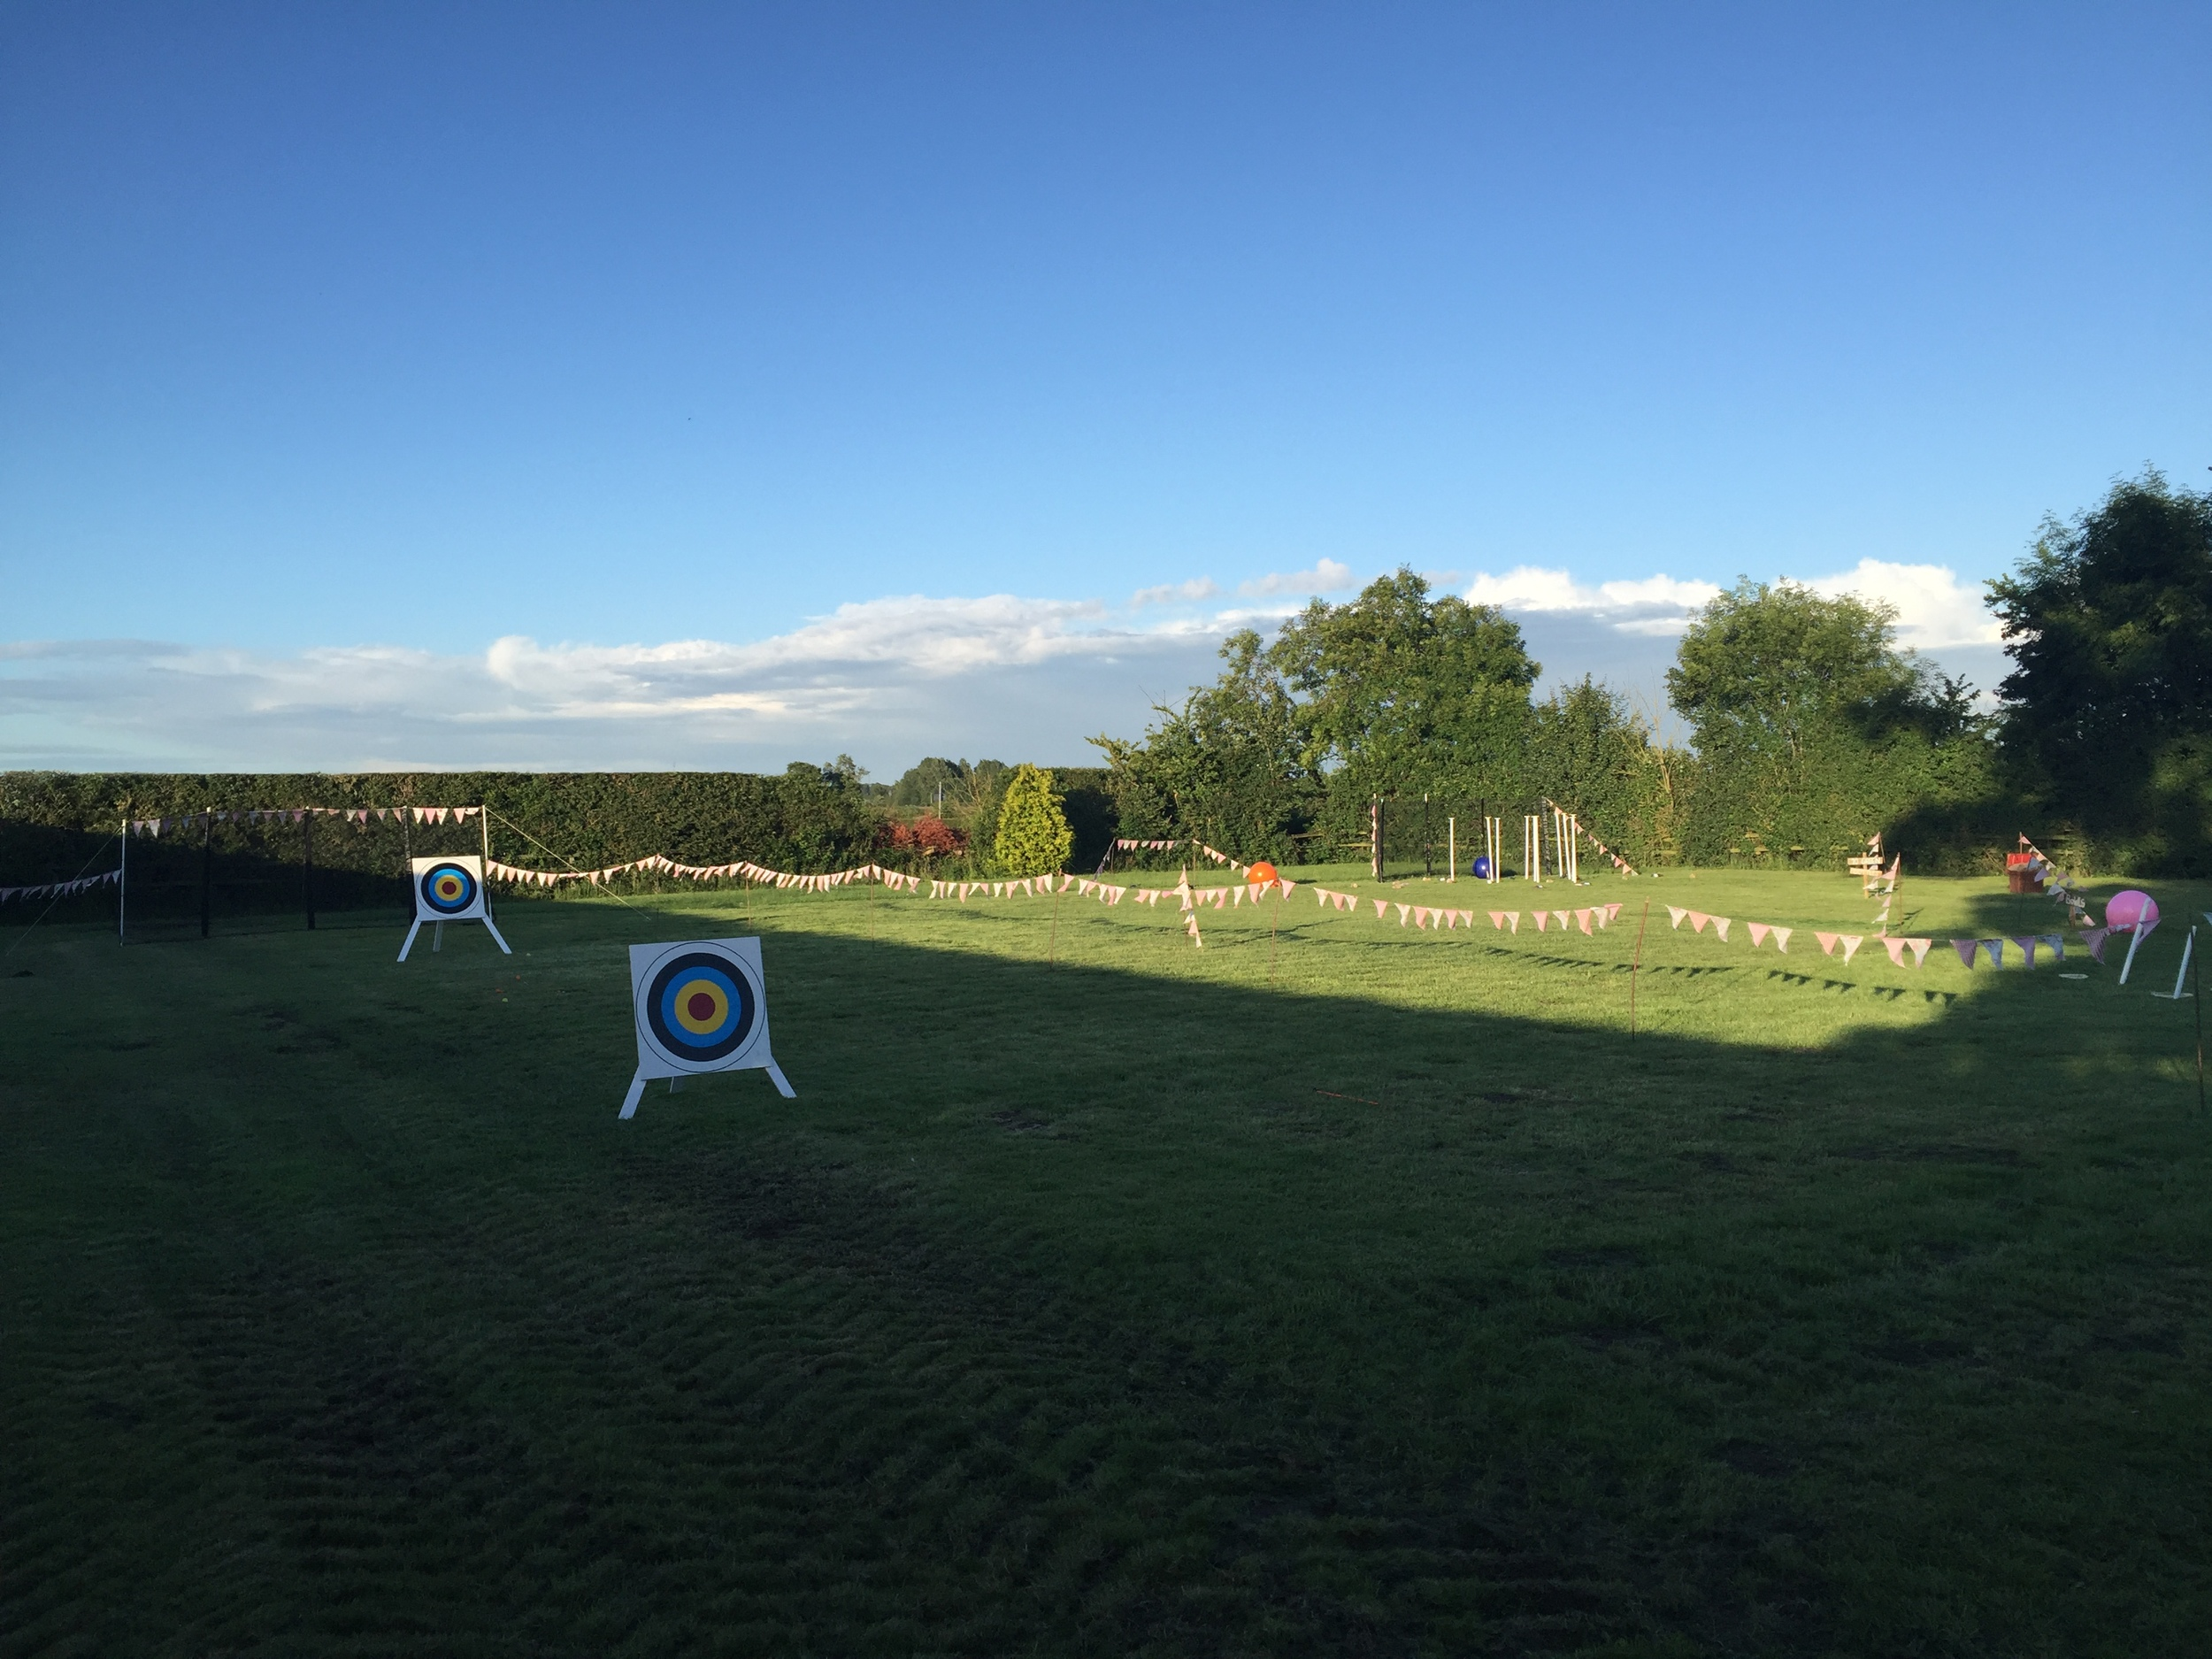 A spot of archery before the big night? Why not!